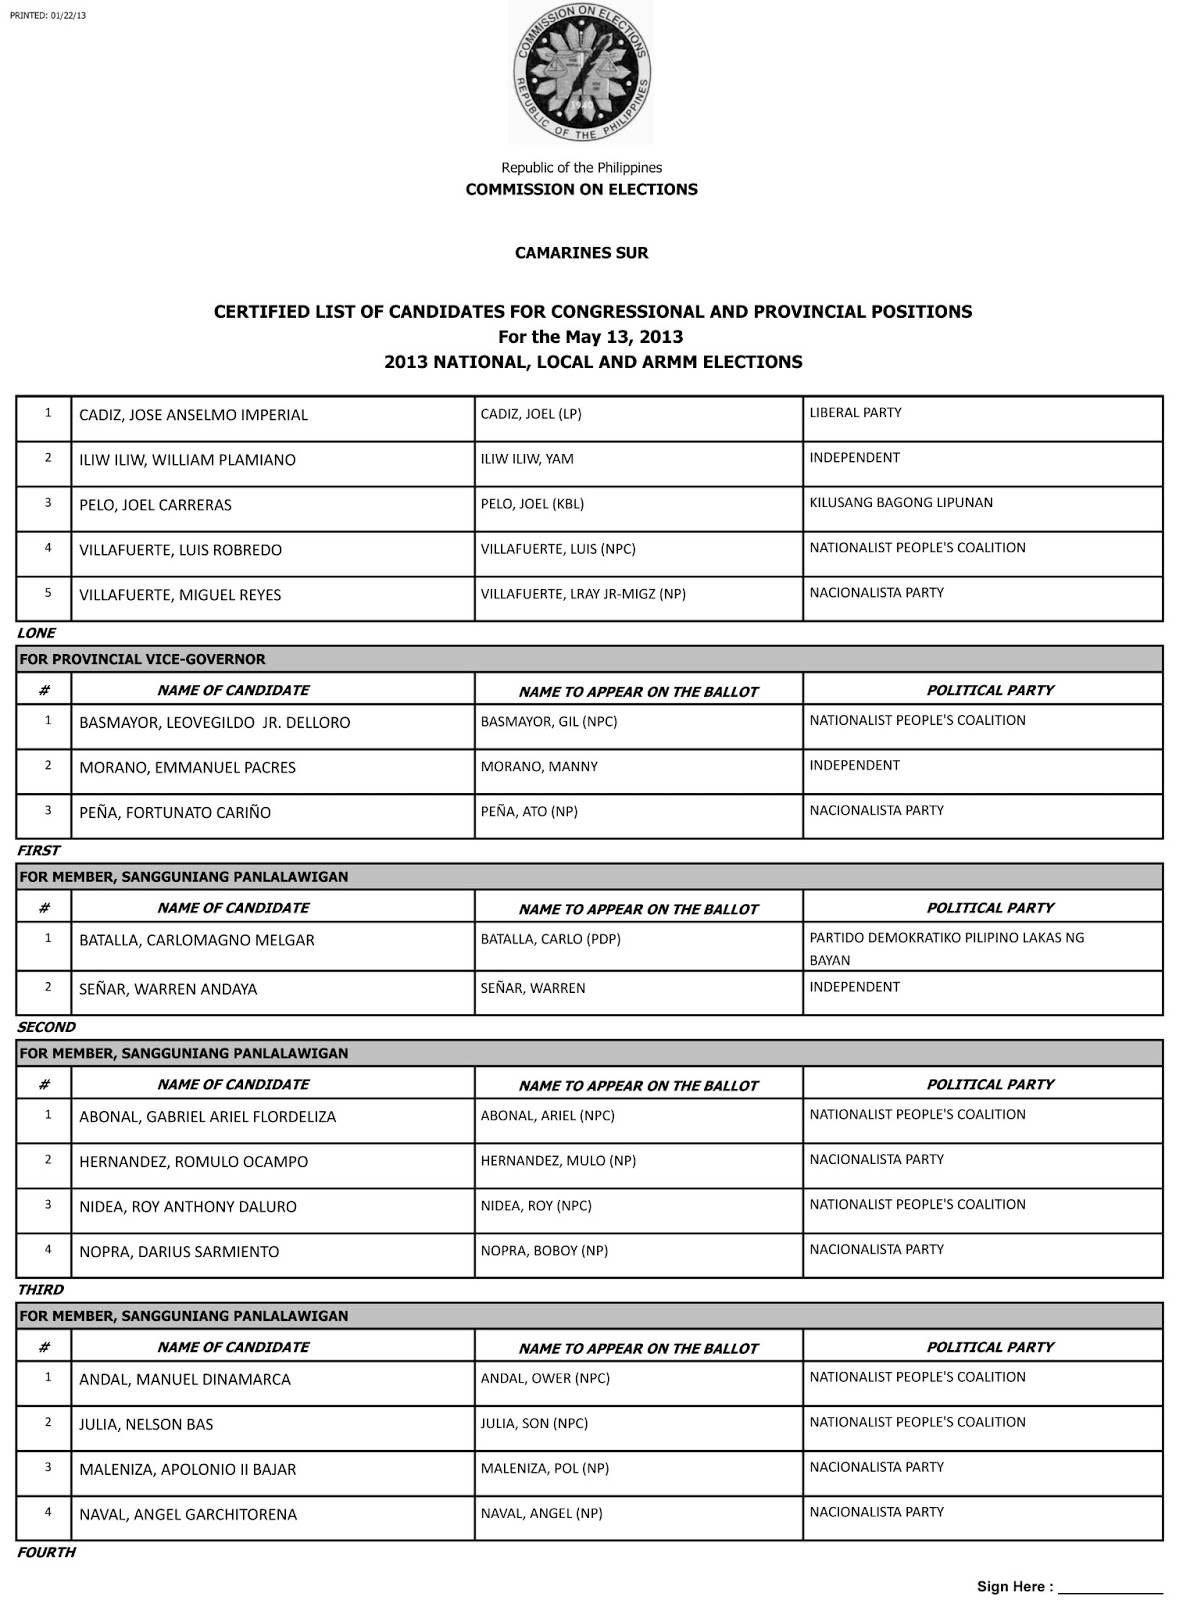 Official List of Candidates in Camarines Sur Congressional